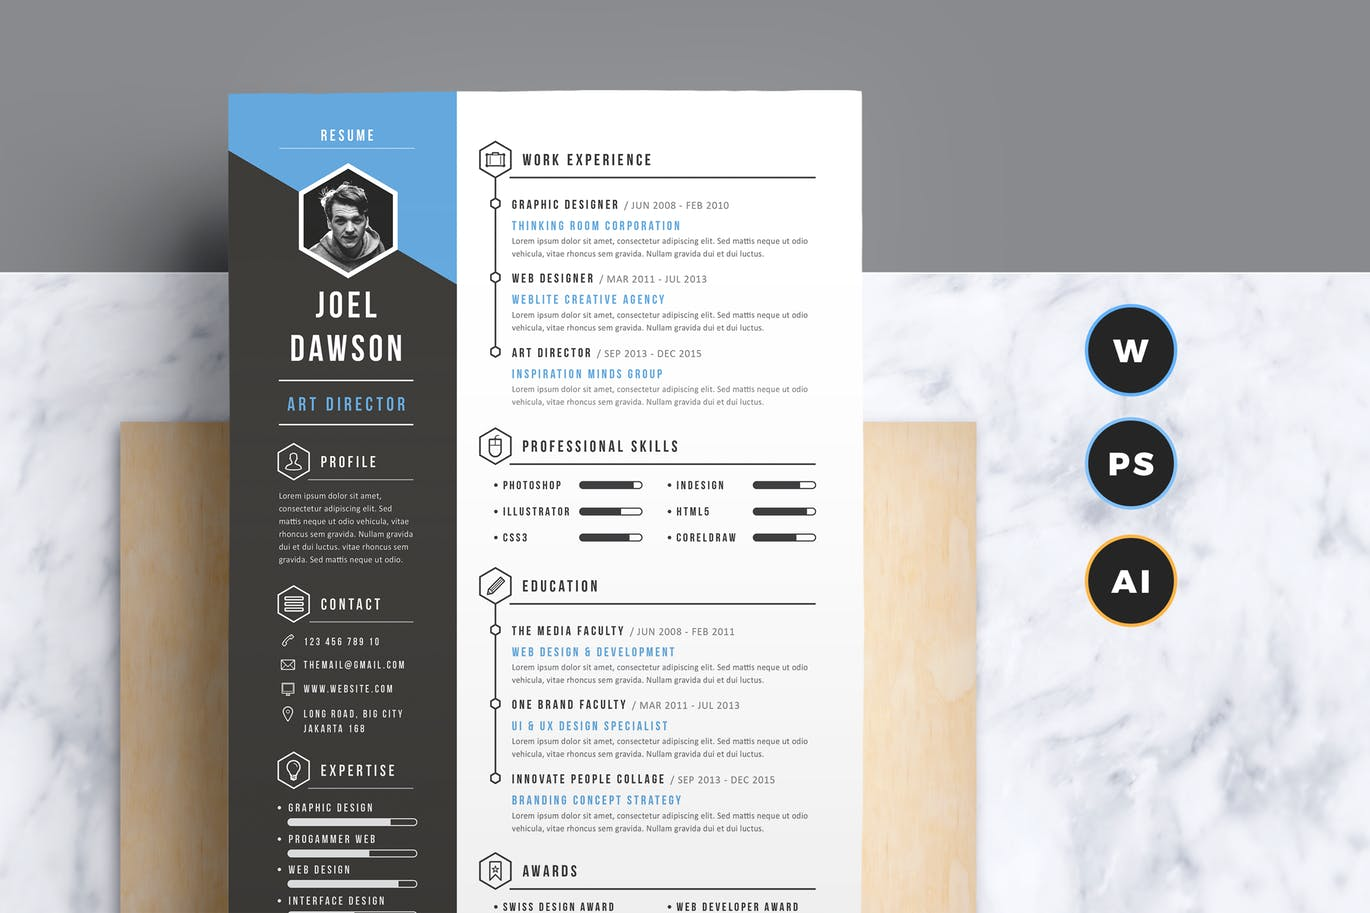 The Best CV & Resume Templates: 50 Examples 6